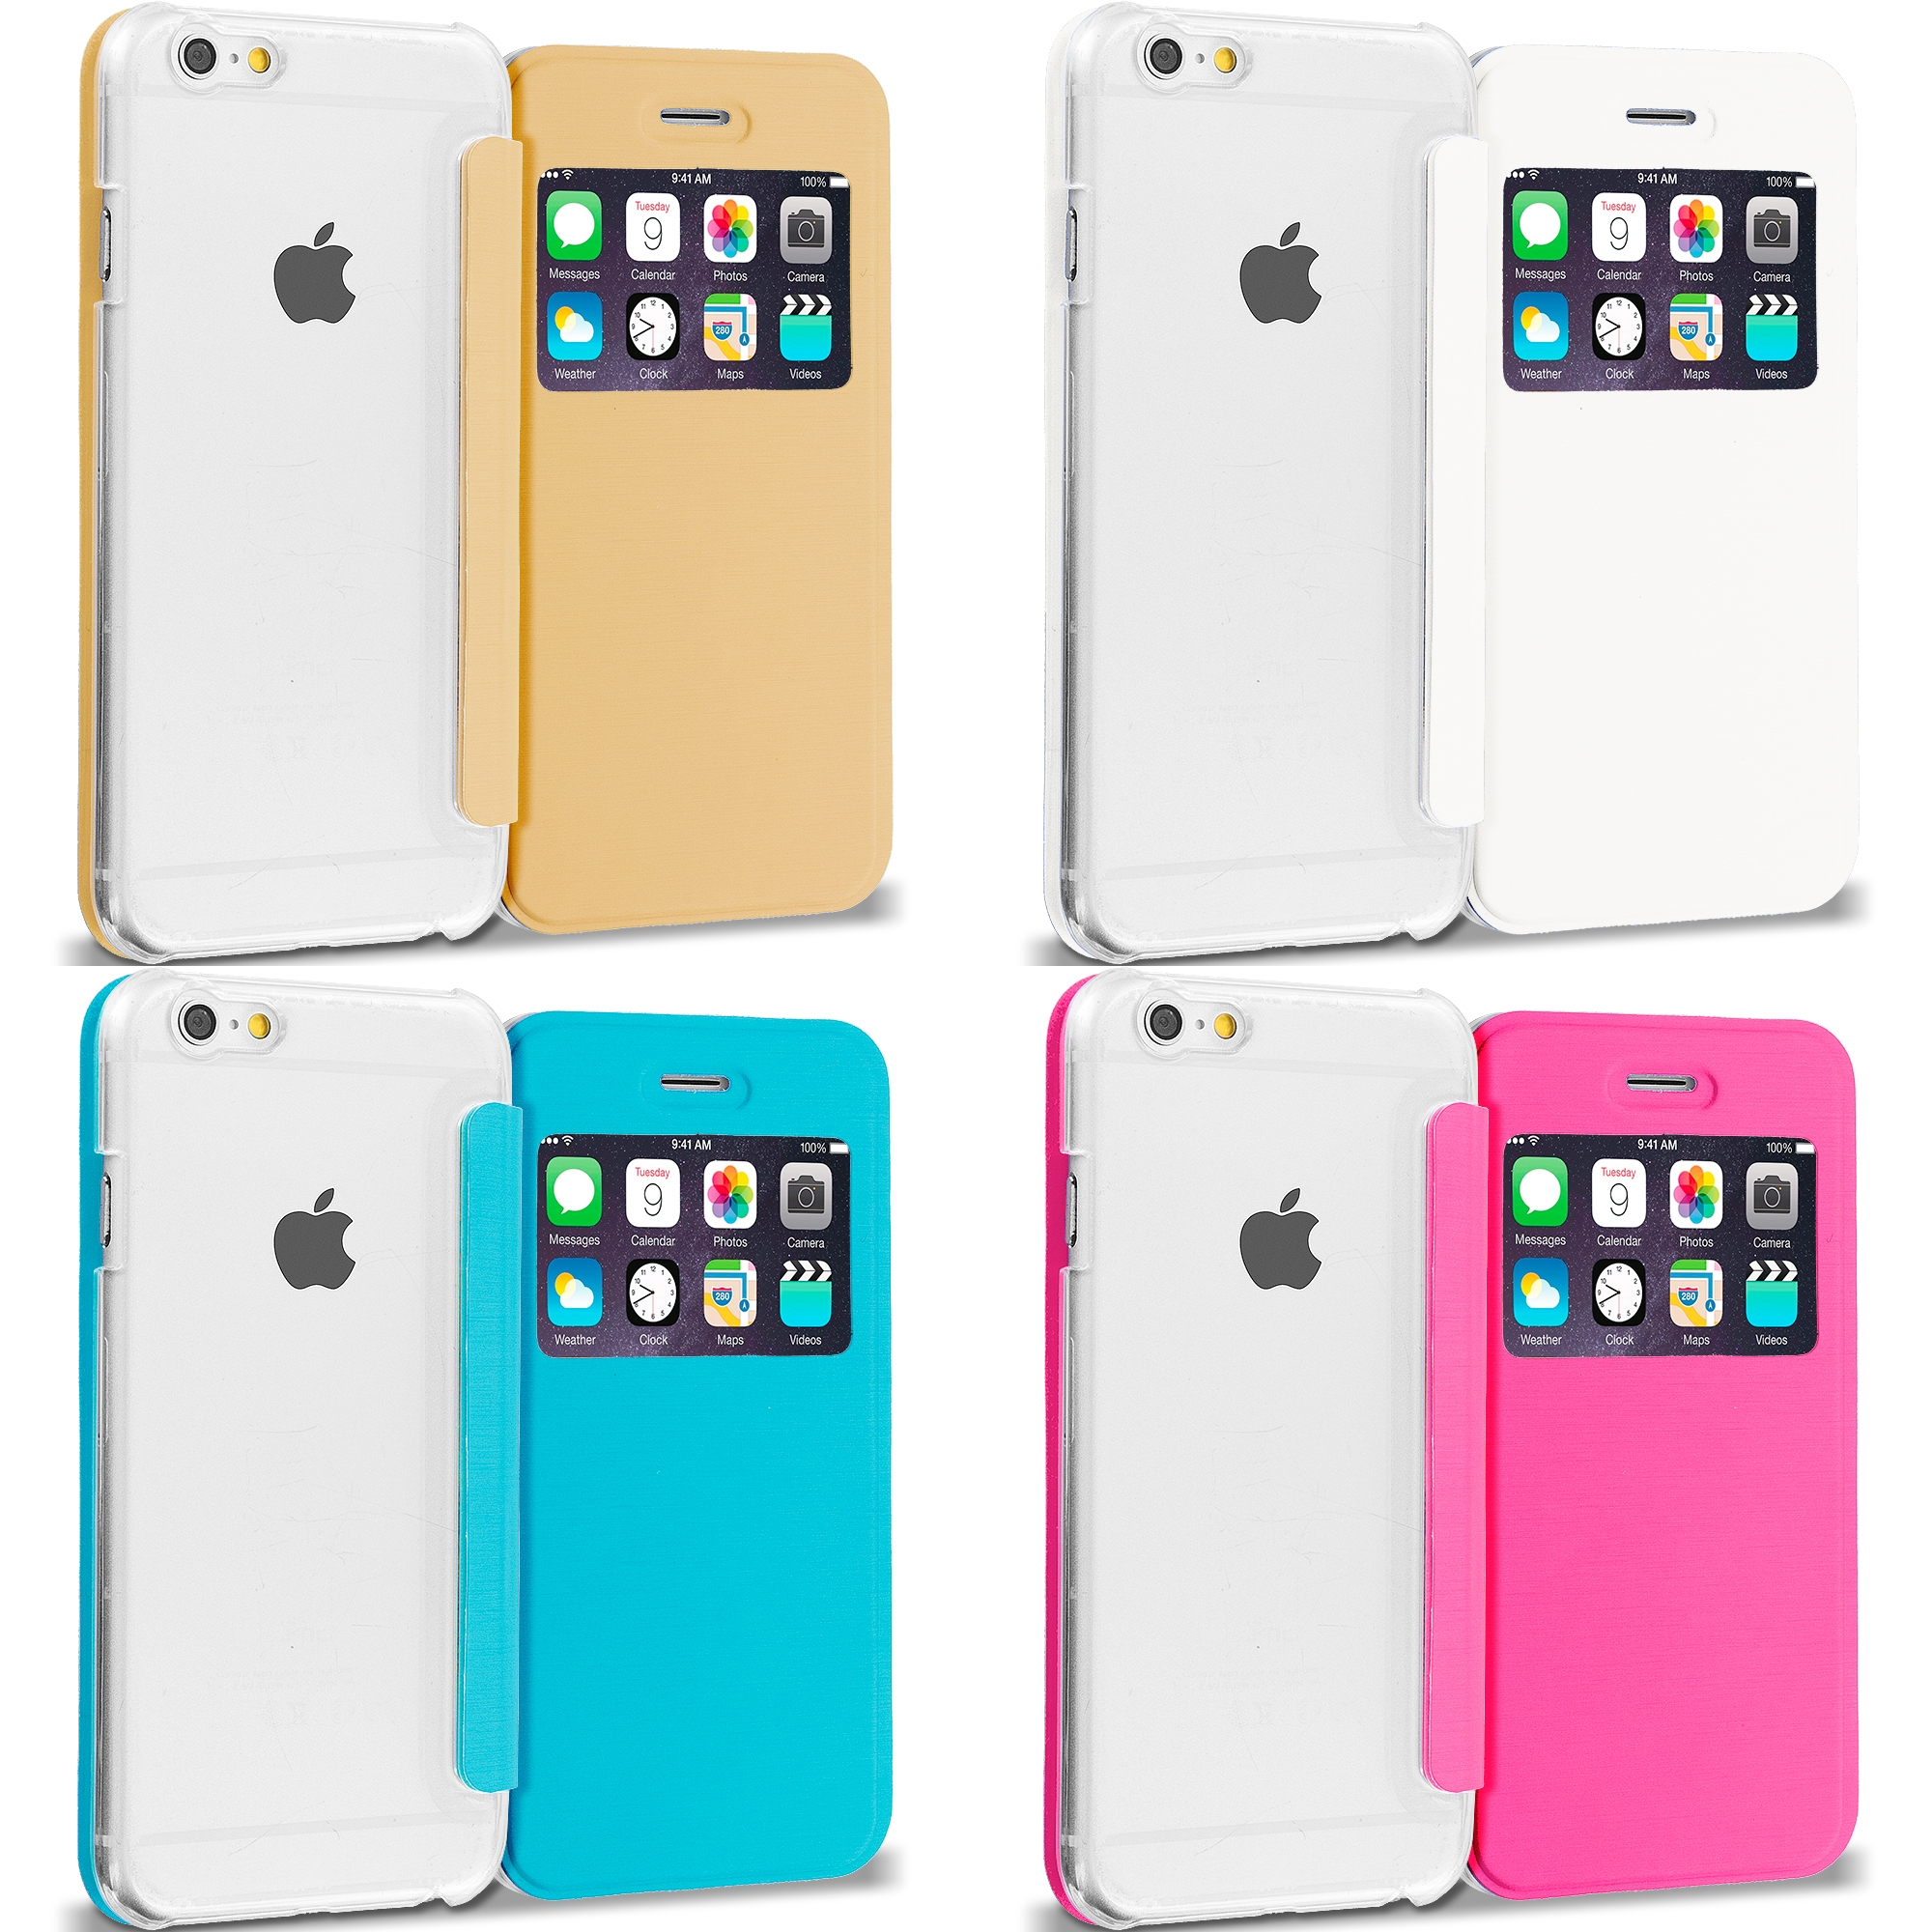 Apple iPhone 6 Plus 6S Plus (5.5) 4 in 1 Combo Bundle Pack - Slim Hard Wallet Flip Case Cover Clear Back With Window